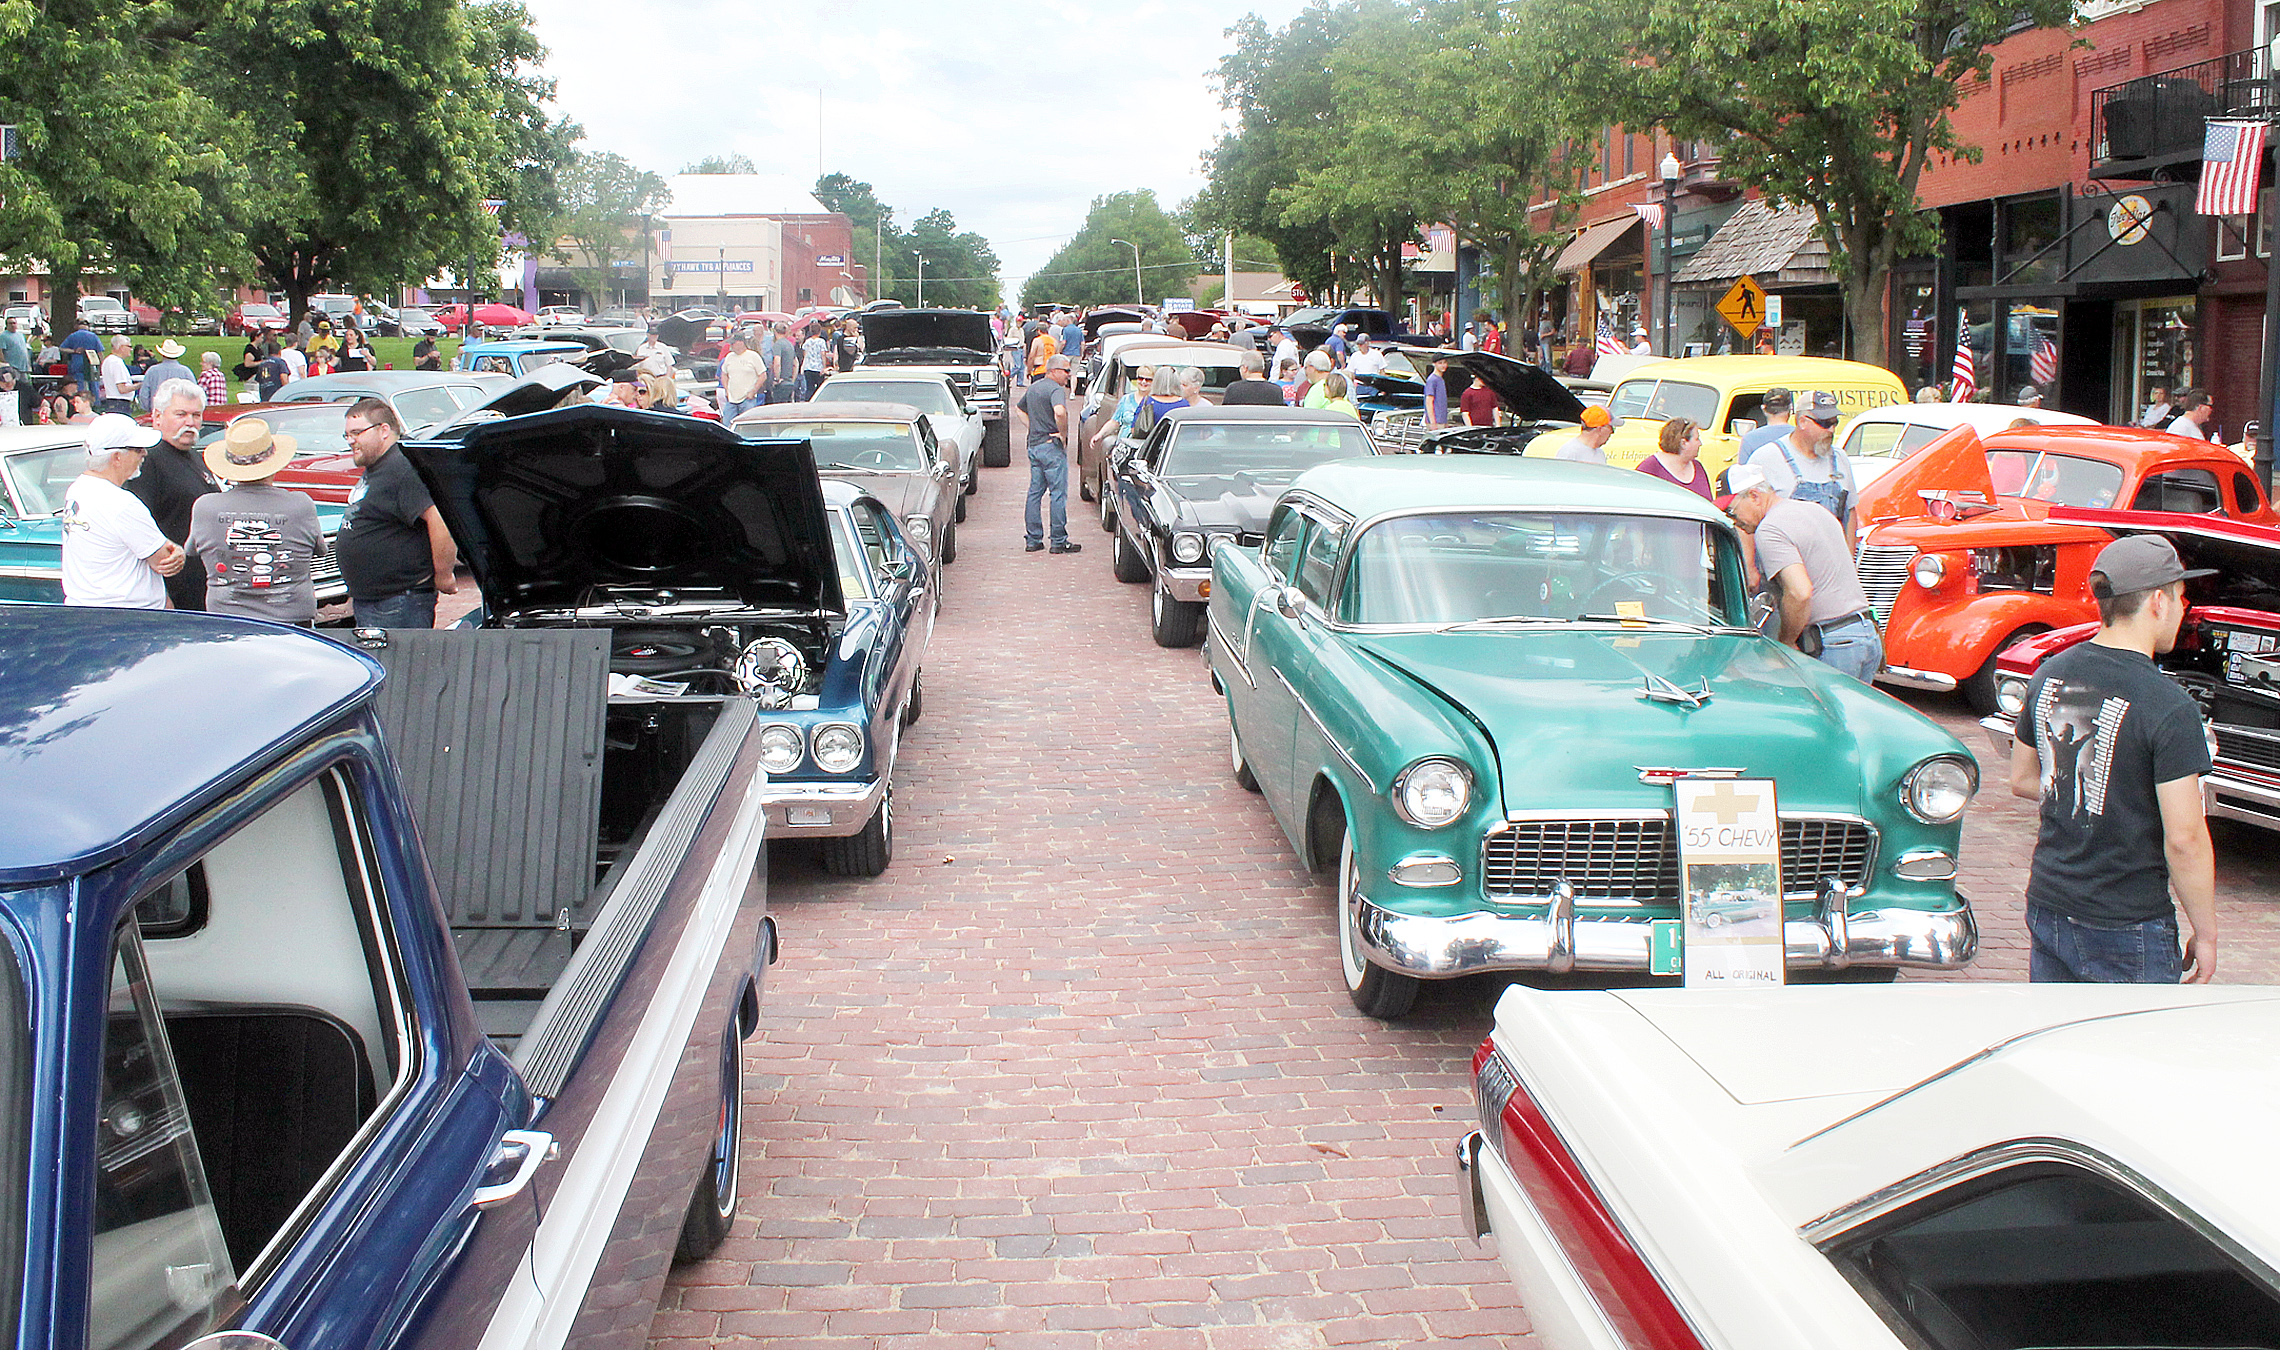 A total of 90 classic vehicles were displayed during the Glory Days car show — down from last year's show of more than 150, car show organizers noted, but still a good turnout given the weather situation.